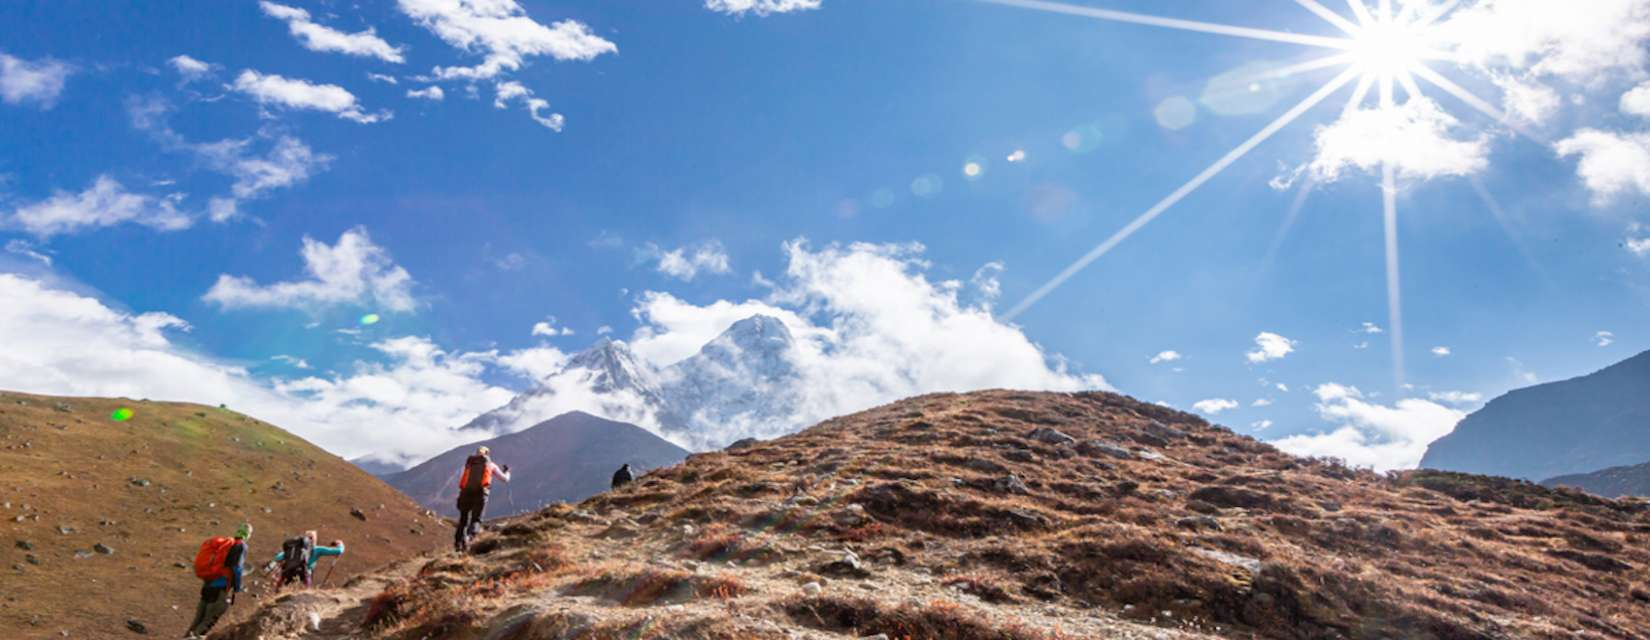 Hire a Guide and Porter in Nepal